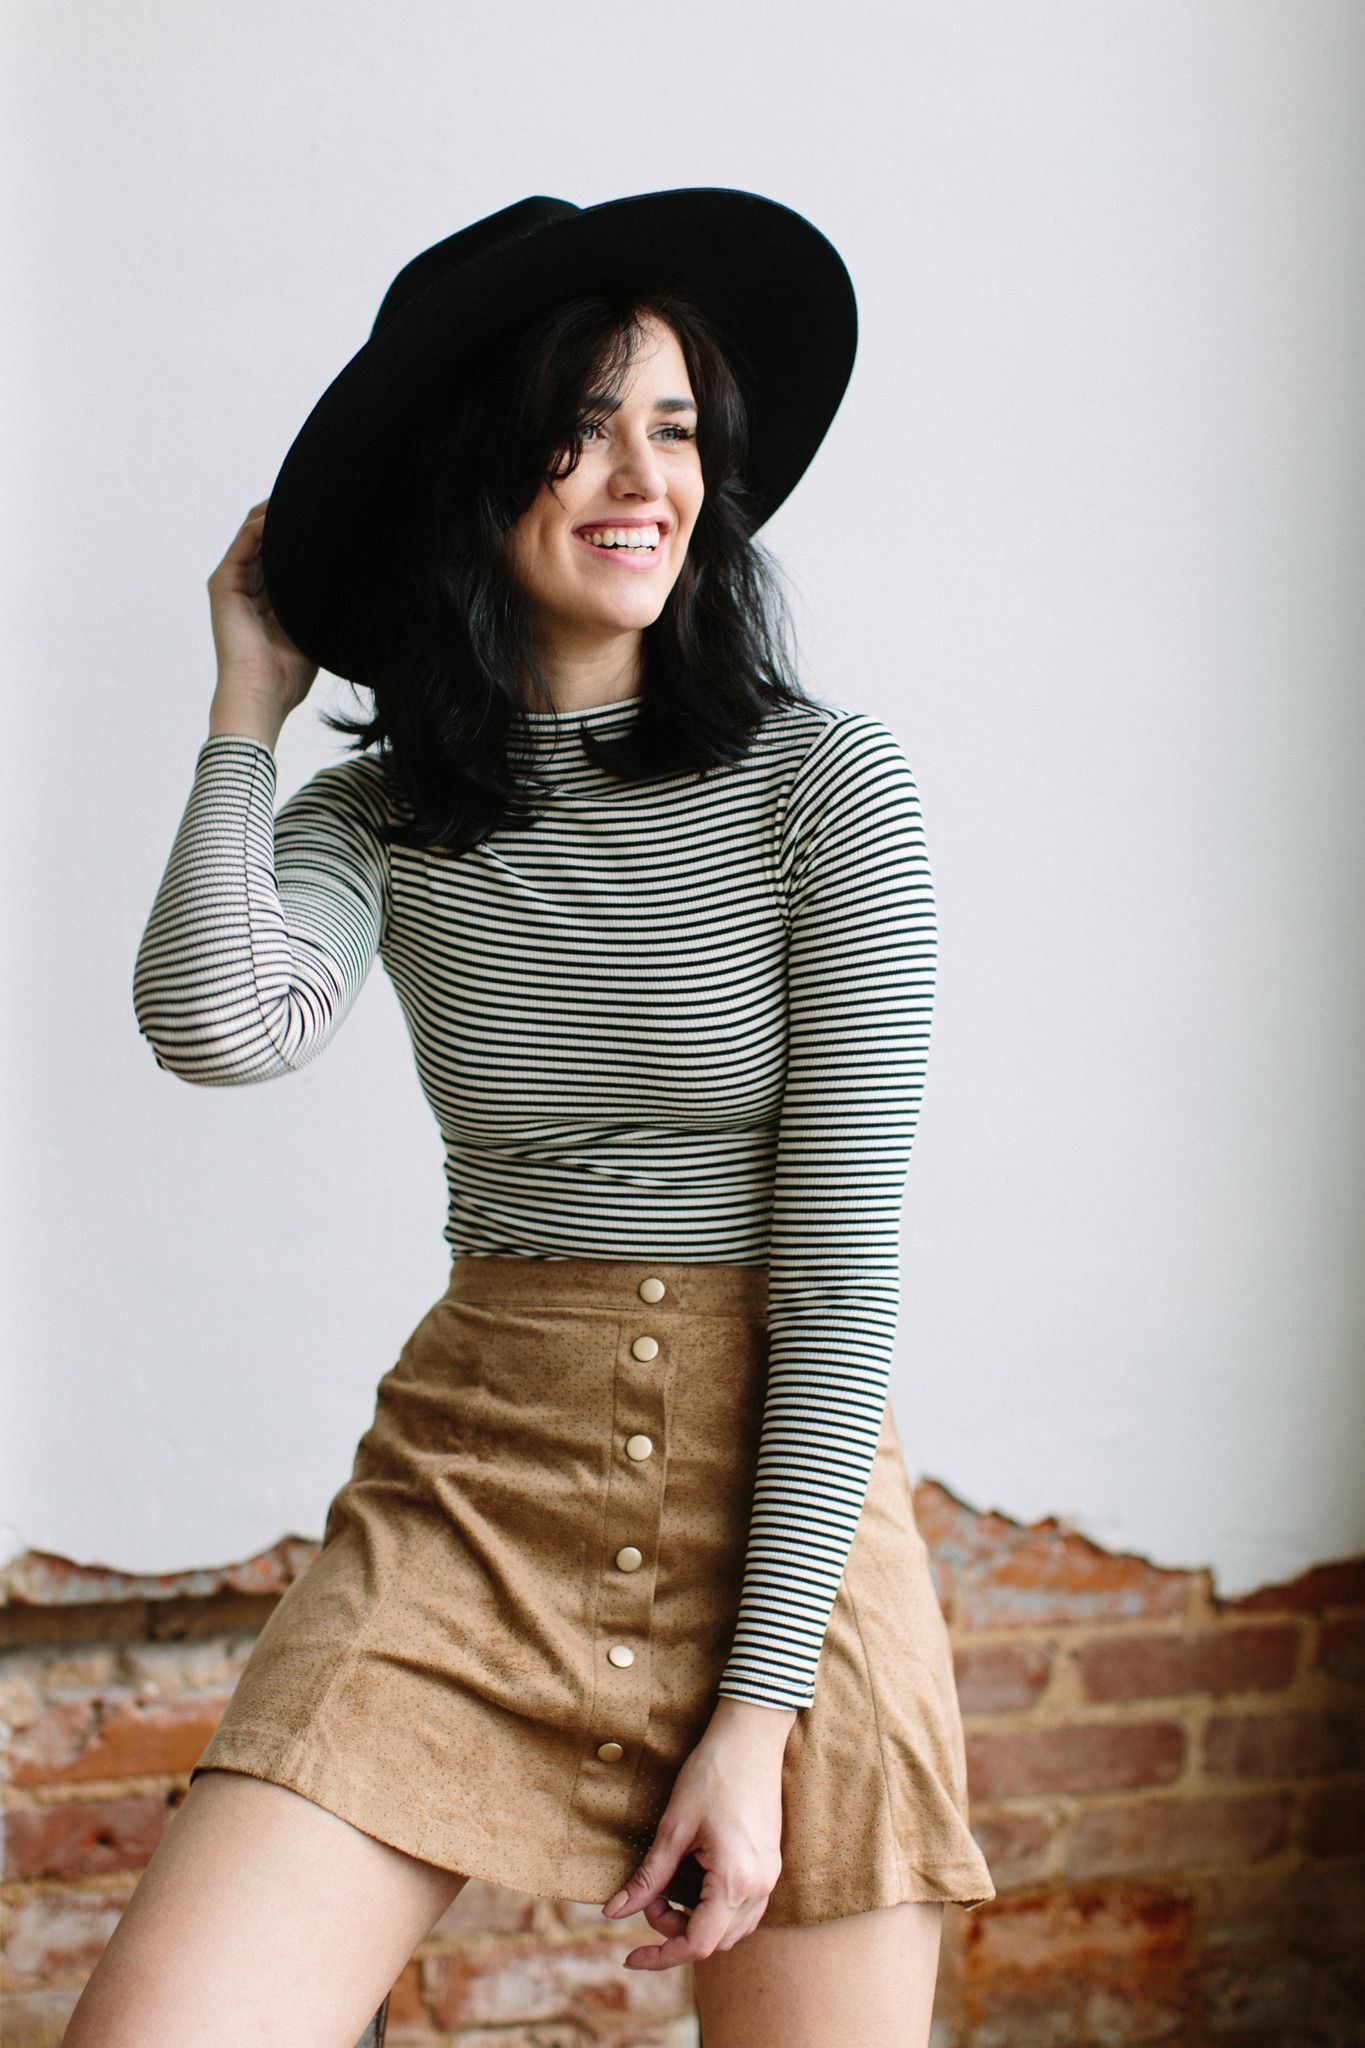 Striped Rowan inspiration, LOVE this whole outfit!